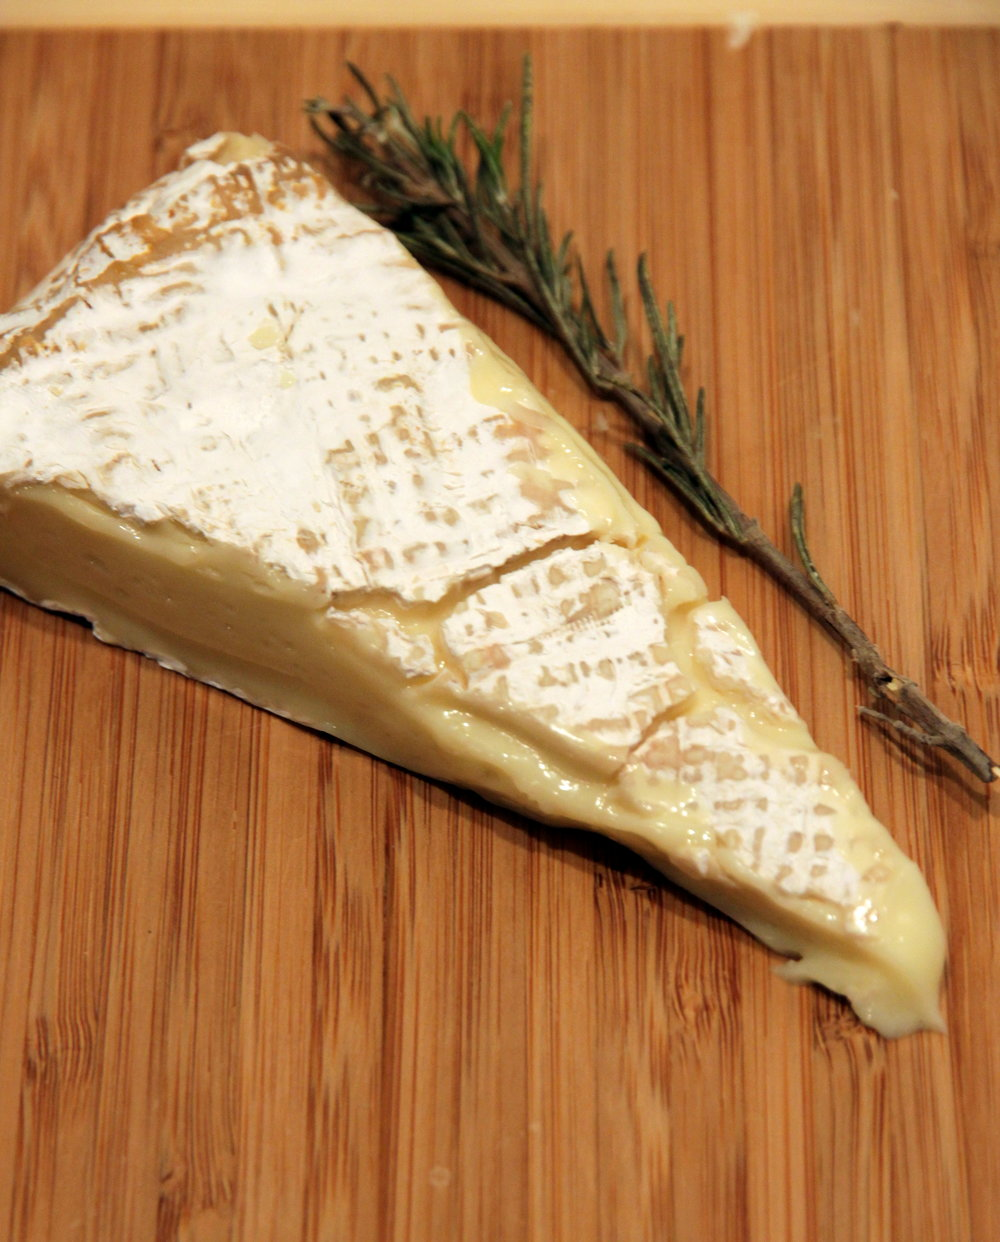 A well-ripened brie has a crust that's more mottled. Its paste will be a bit shiny.